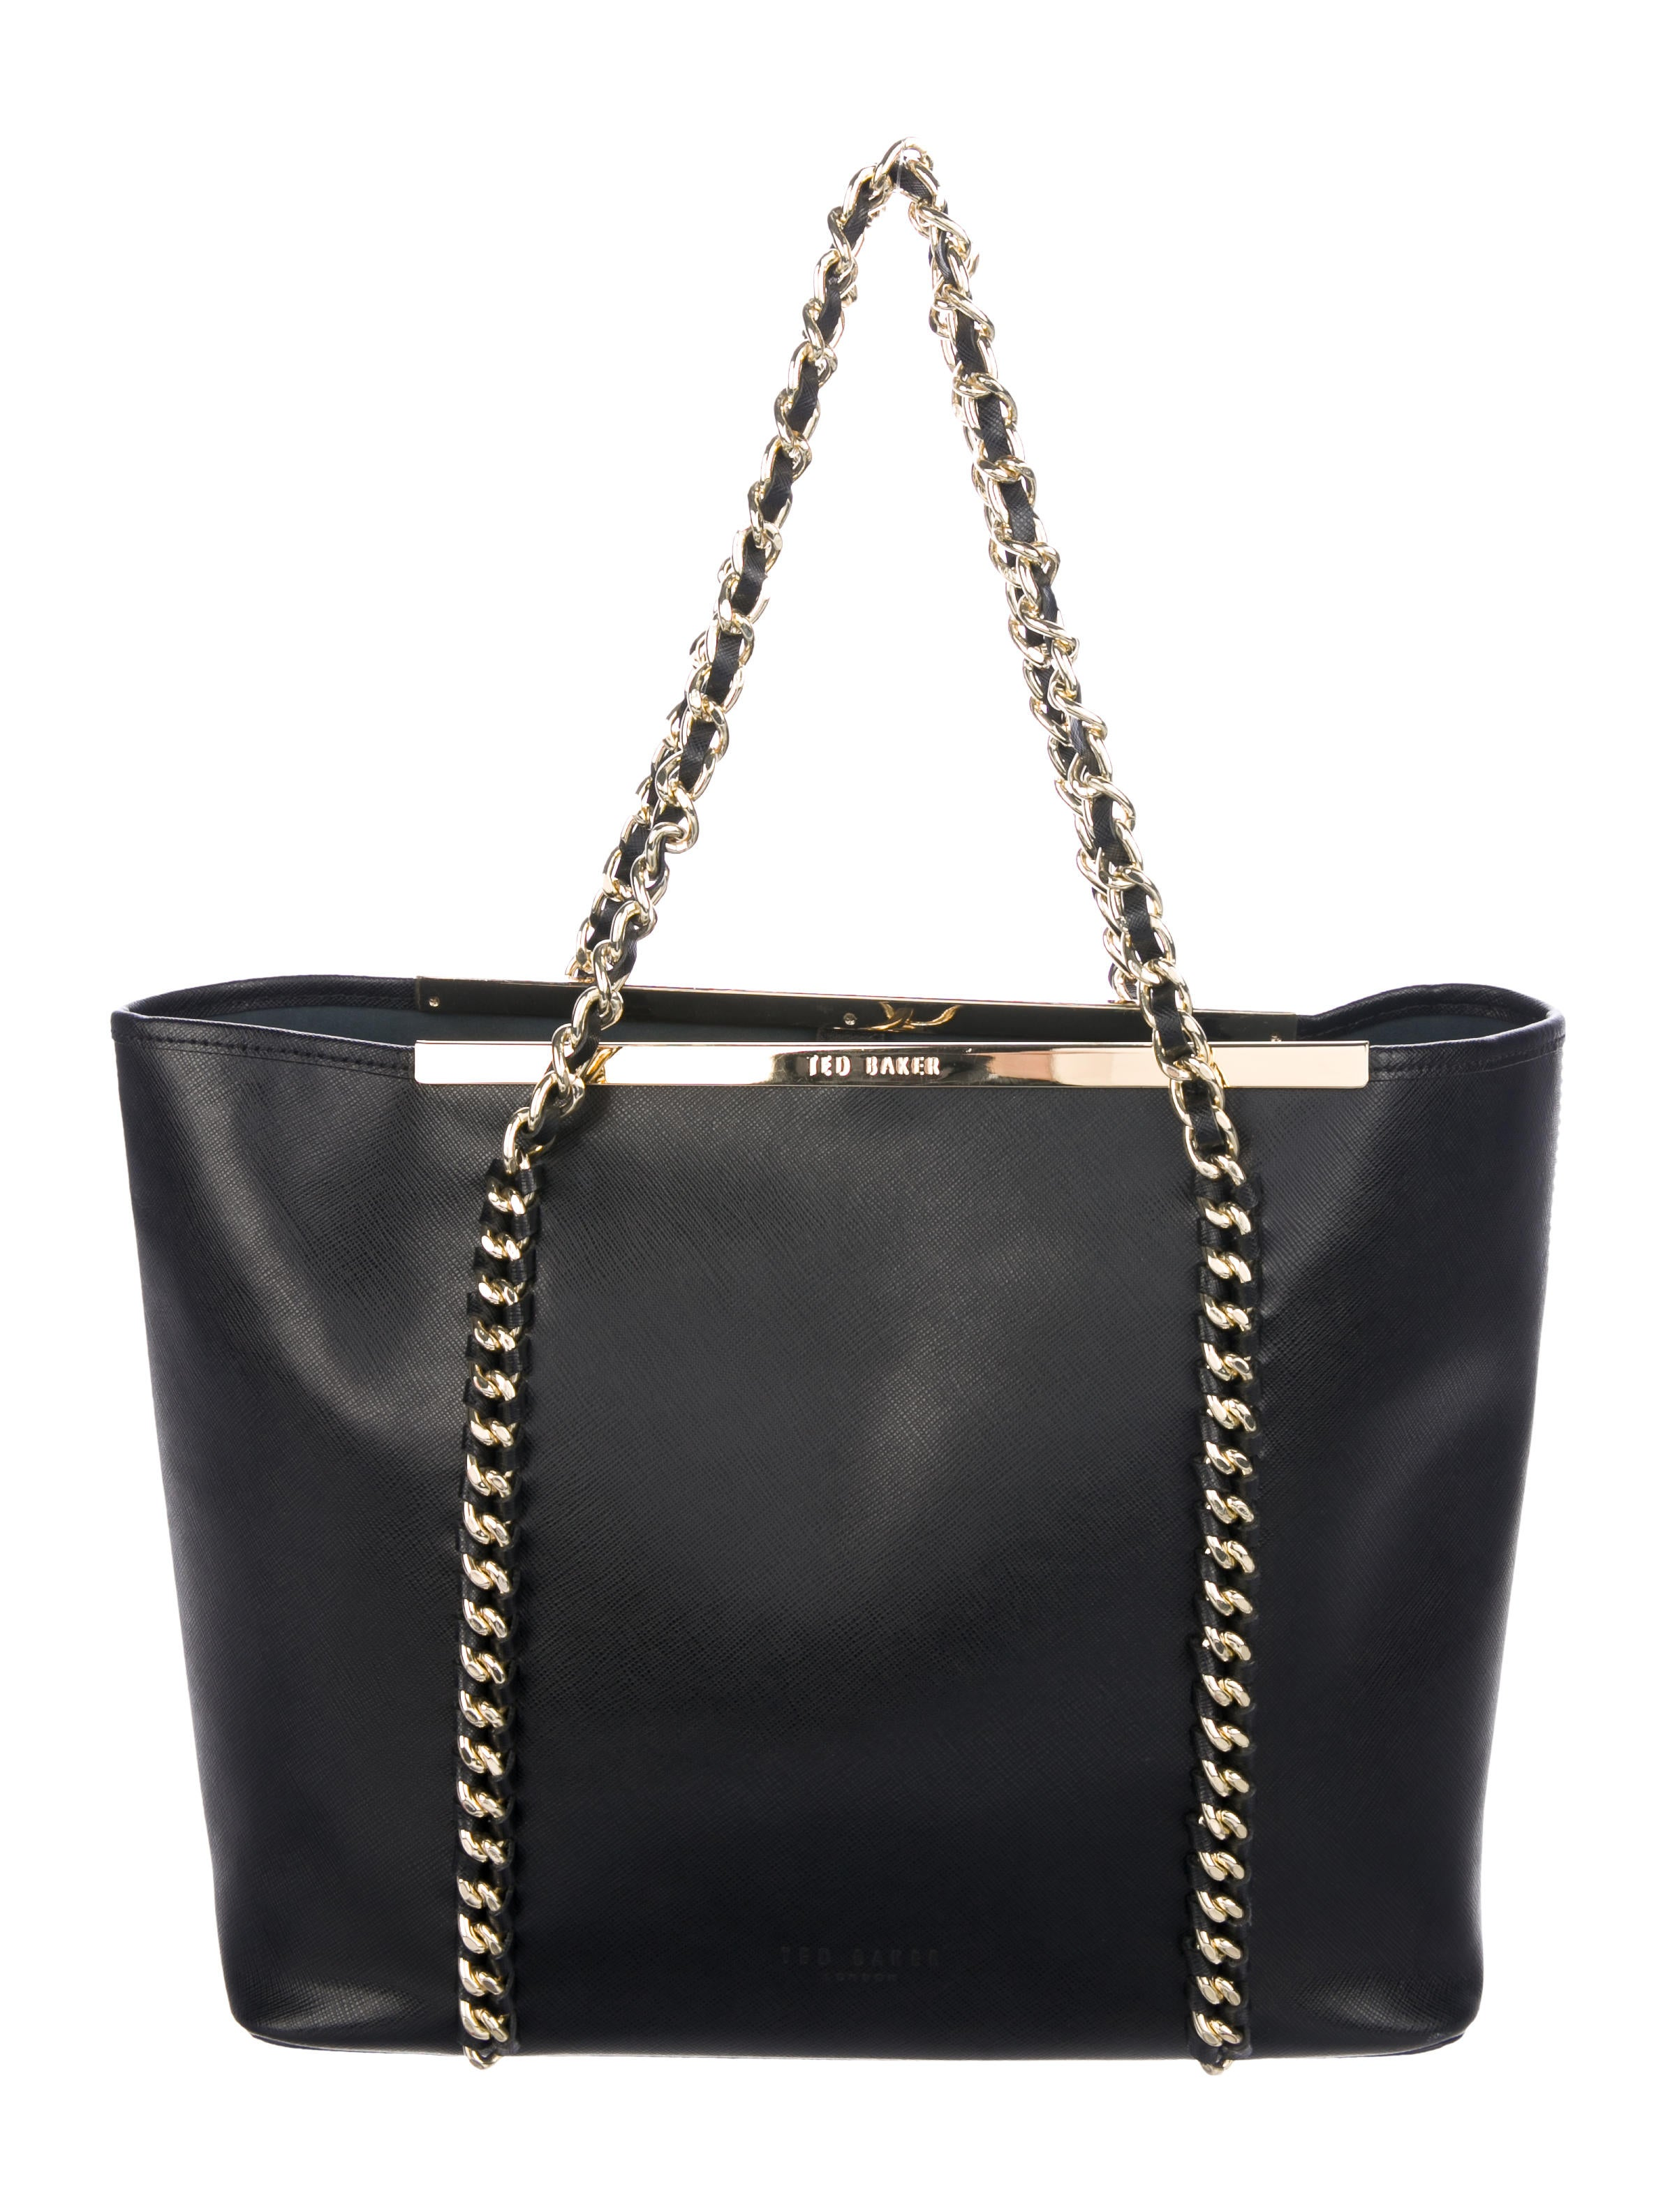 509c3dcf8f Ted Baker Noelle Crosshatch Shopper Tote - Handbags - W3B21296 | The ...